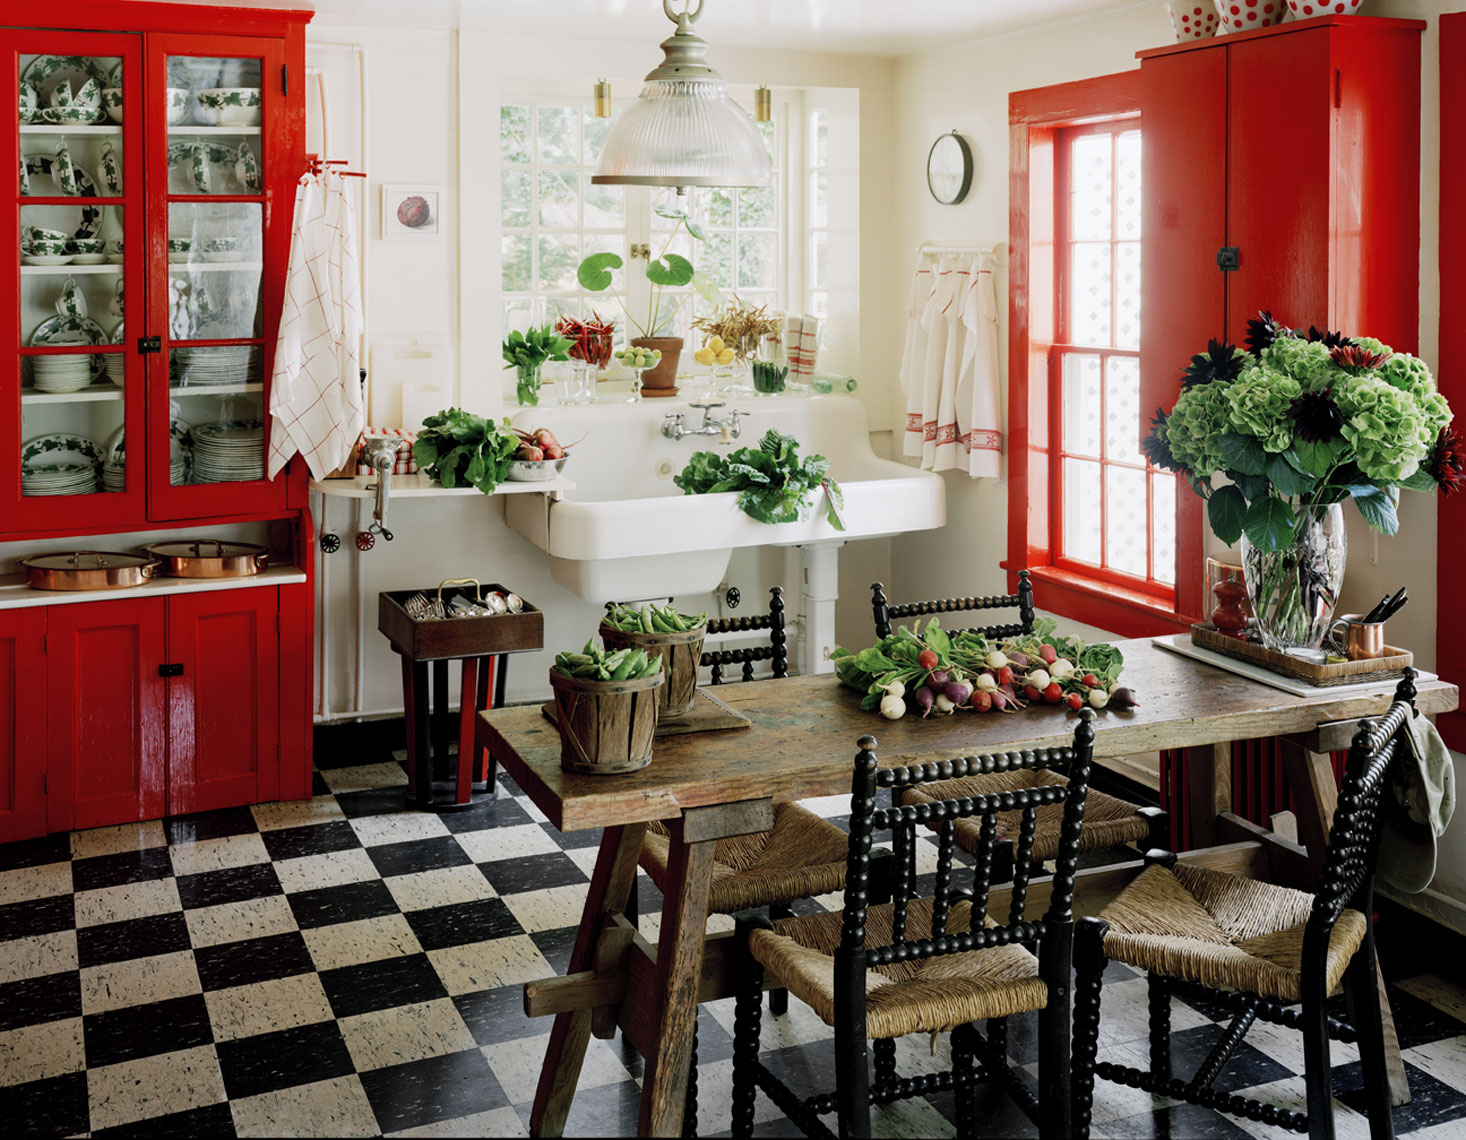 gorgeous country kitchen, loving the bright fire engine red cabinets